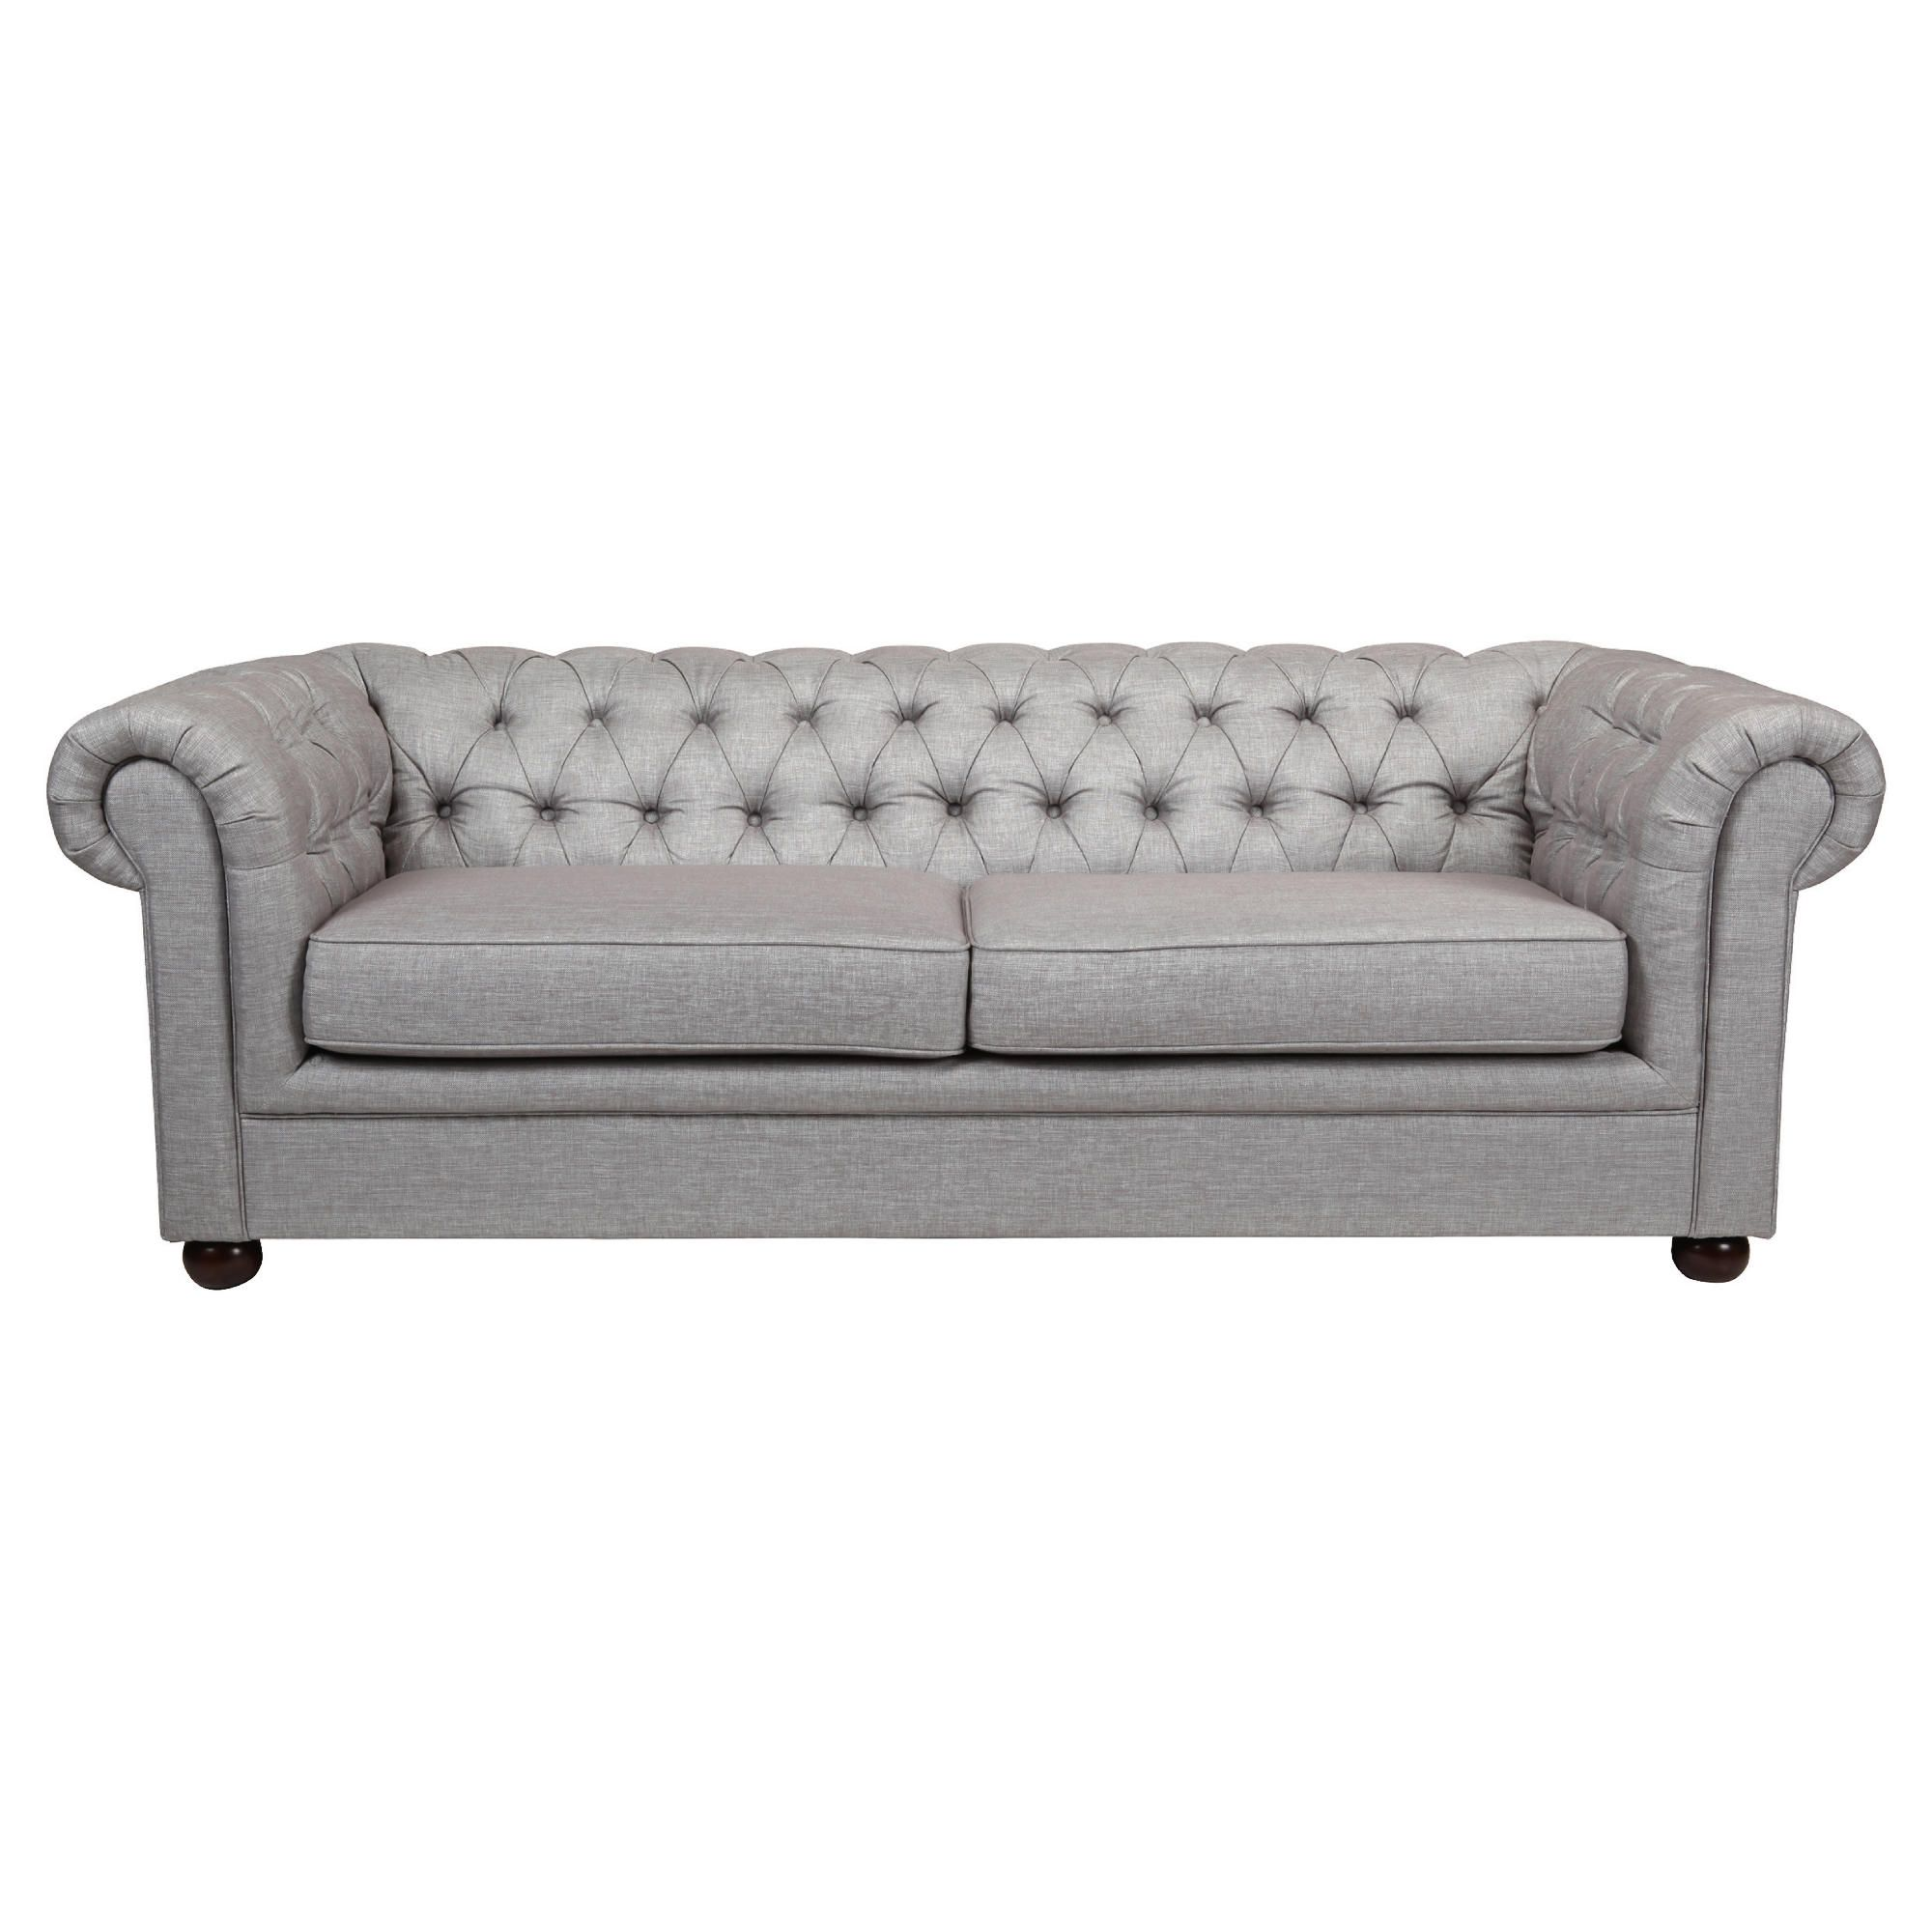 Chesterfield Fabric Sofabed, Silver Linen at Tesco Direct